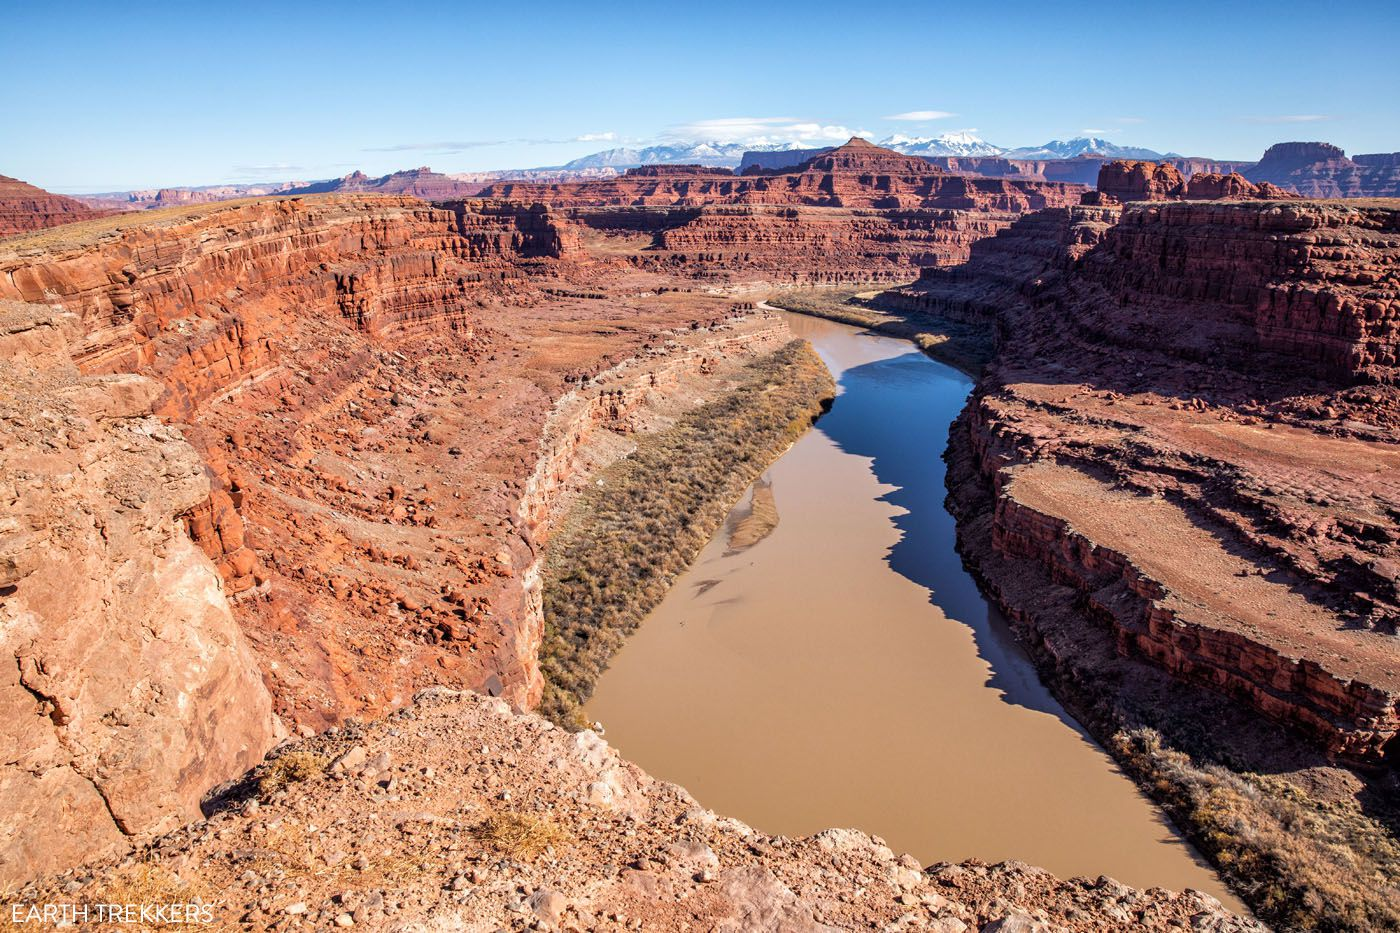 Thelma and Louise Point View